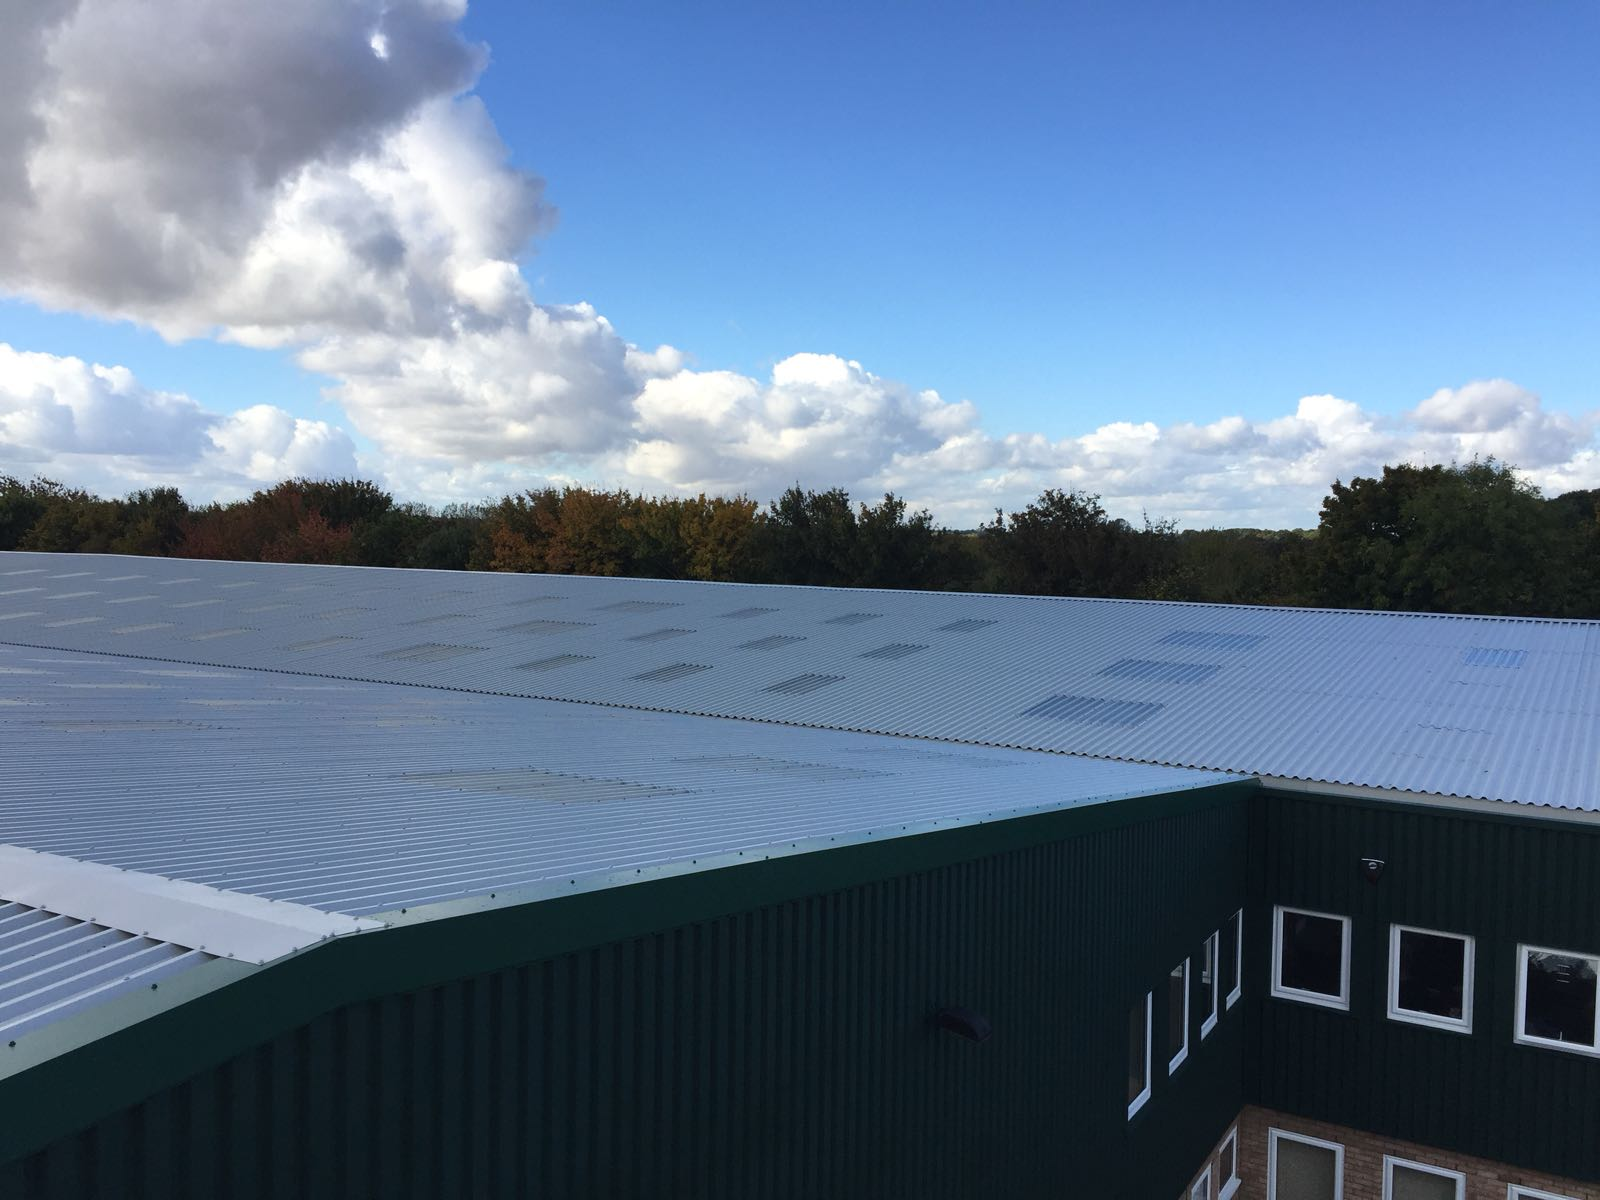 premier industrial cladding and roofing ltd